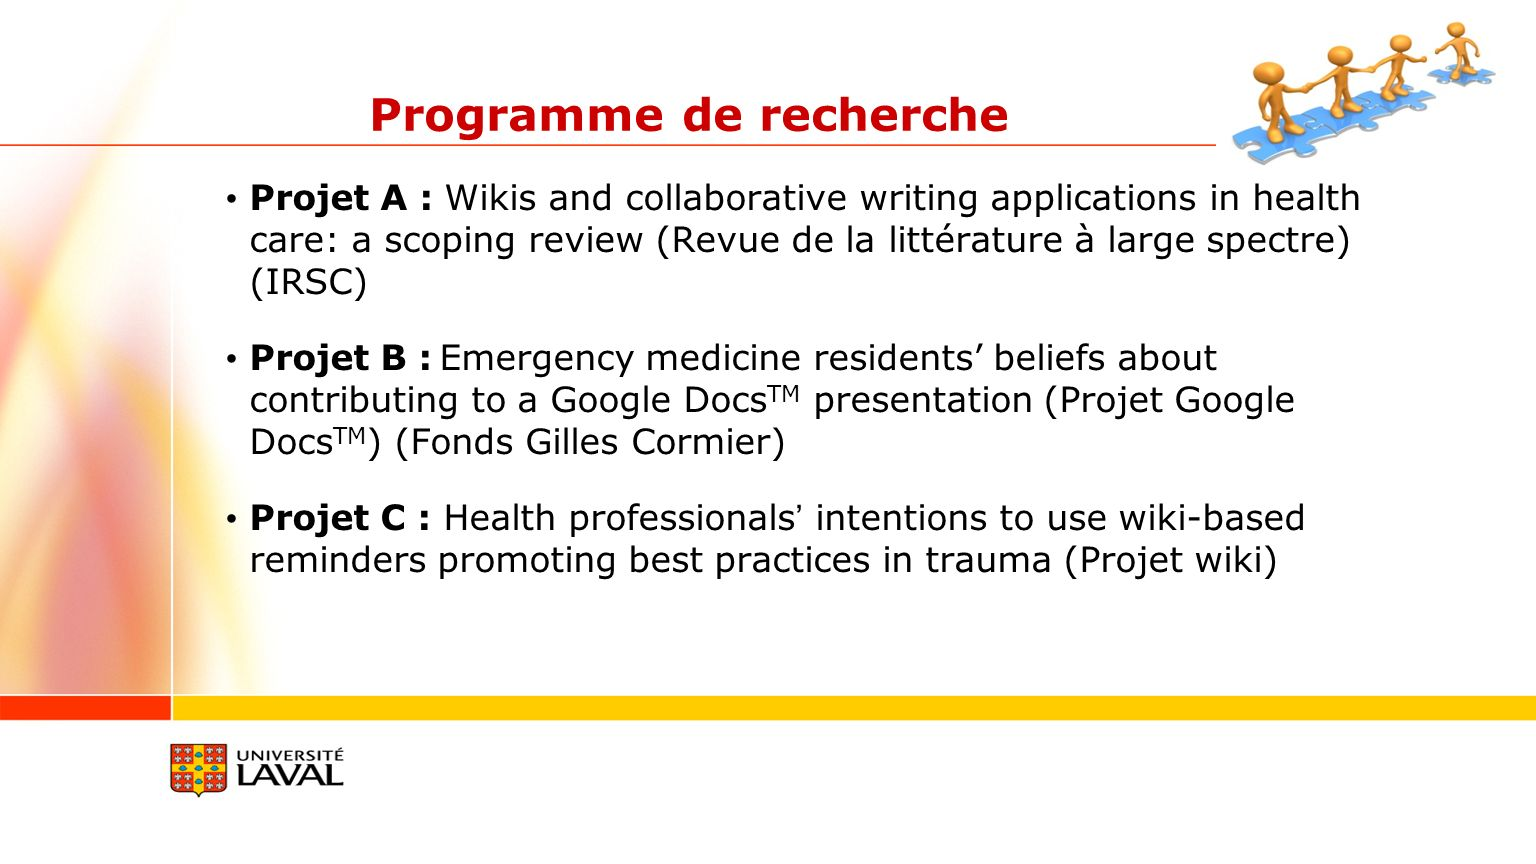 Projet A : Wikis and collaborative writing applications in health care: a scoping review (Revue de la littérature à large spectre) (IRSC) Projet B : Emergency medicine residents beliefs about contributing to a Google Docs TM presentation (Projet Google Docs TM ) (Fonds Gilles Cormier) Projet C : Health professionals intentions to use wiki-based reminders promoting best practices in trauma (Projet wiki) Programme de recherche